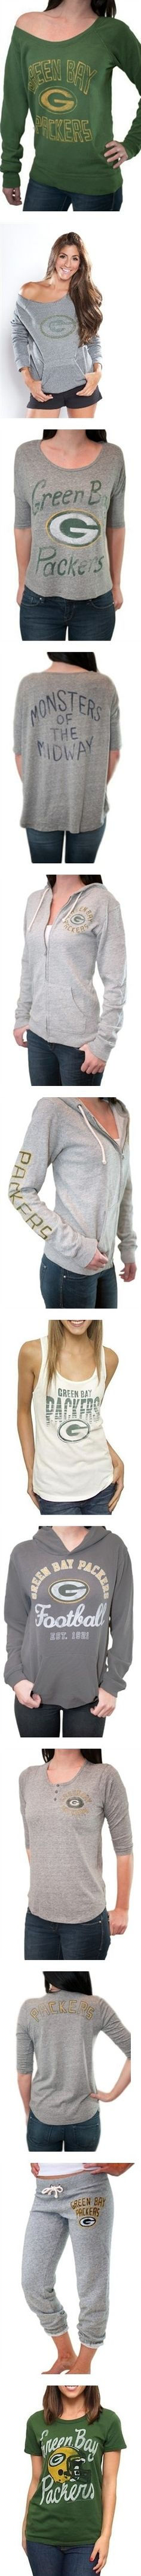 """""""Green Bay Packers Women's Apparel 